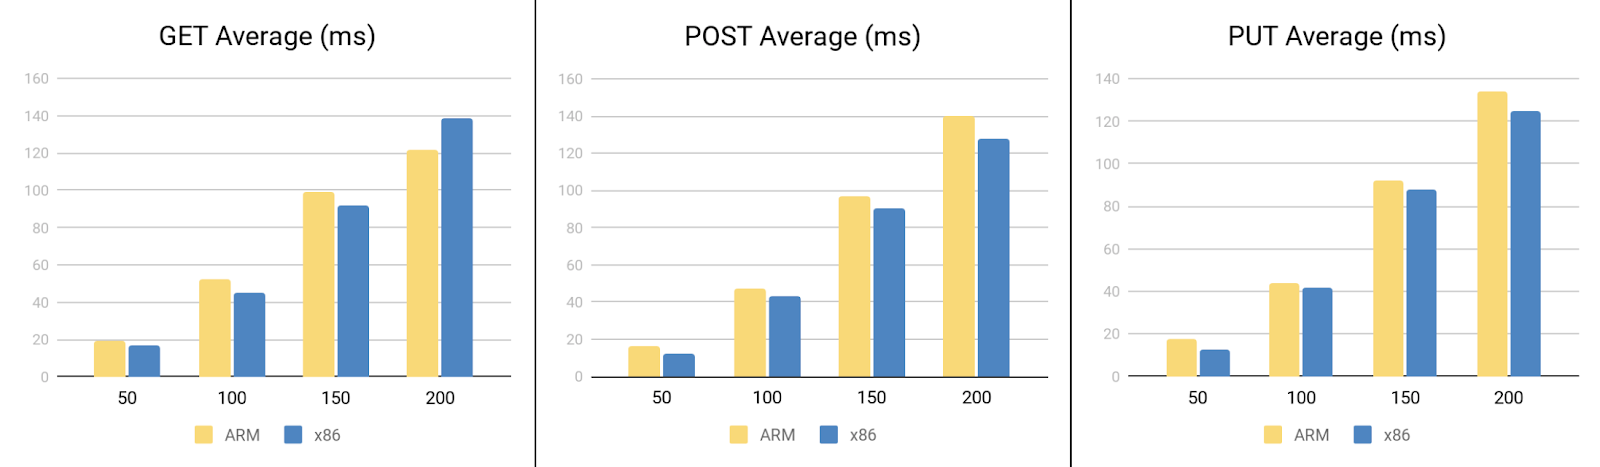 Response latency of GET, POST, and PUT